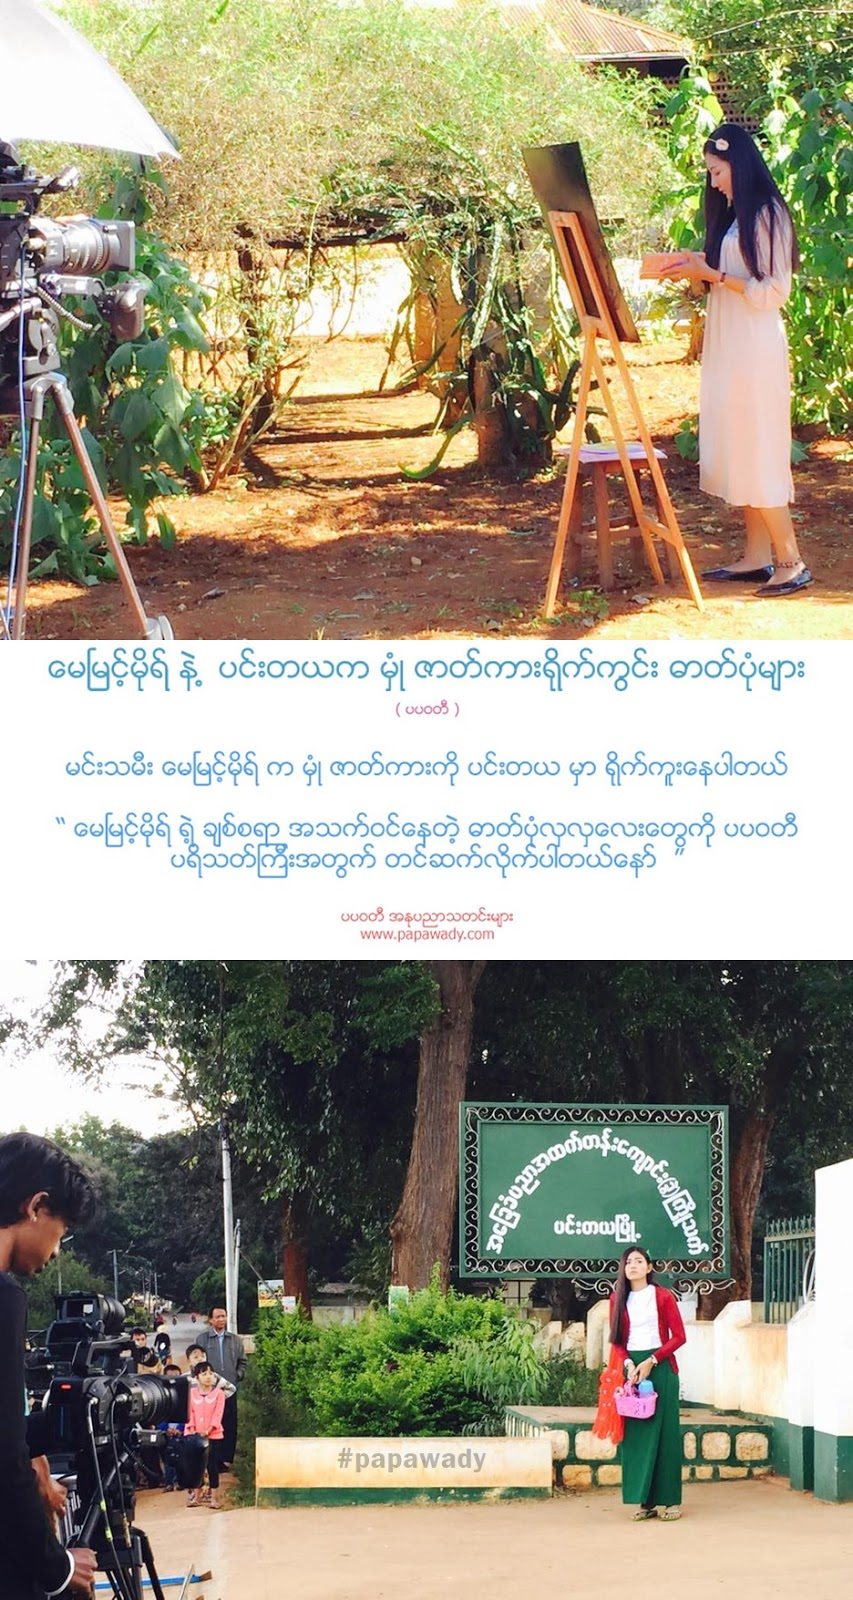 May Myint Moh : Behind The Shooting Scenes in Pintaya